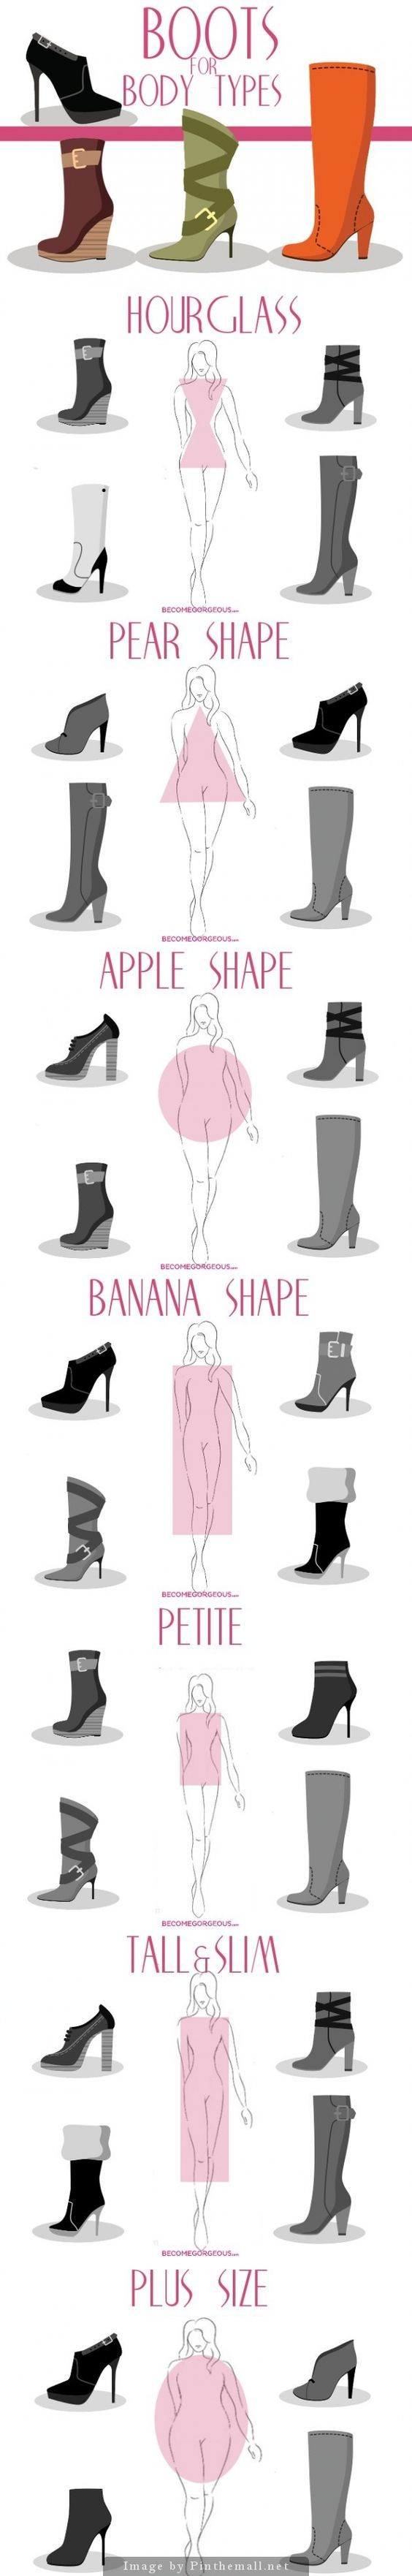 Body Shape Style Guide | eHow | Beauty tips | Sying ...